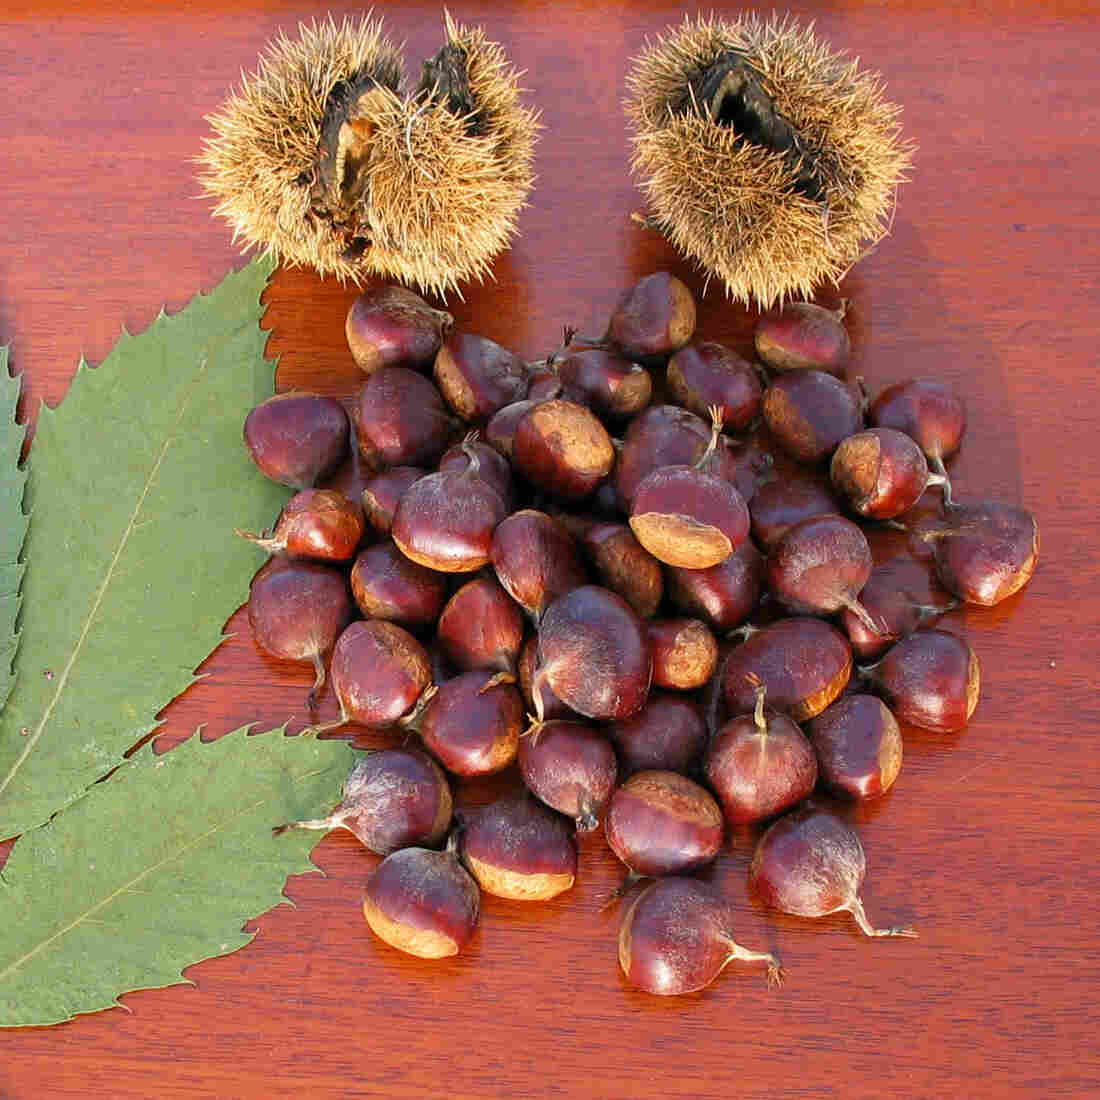 Once And Future Nut: How Genetic Engineering May Bring Back Chestnuts